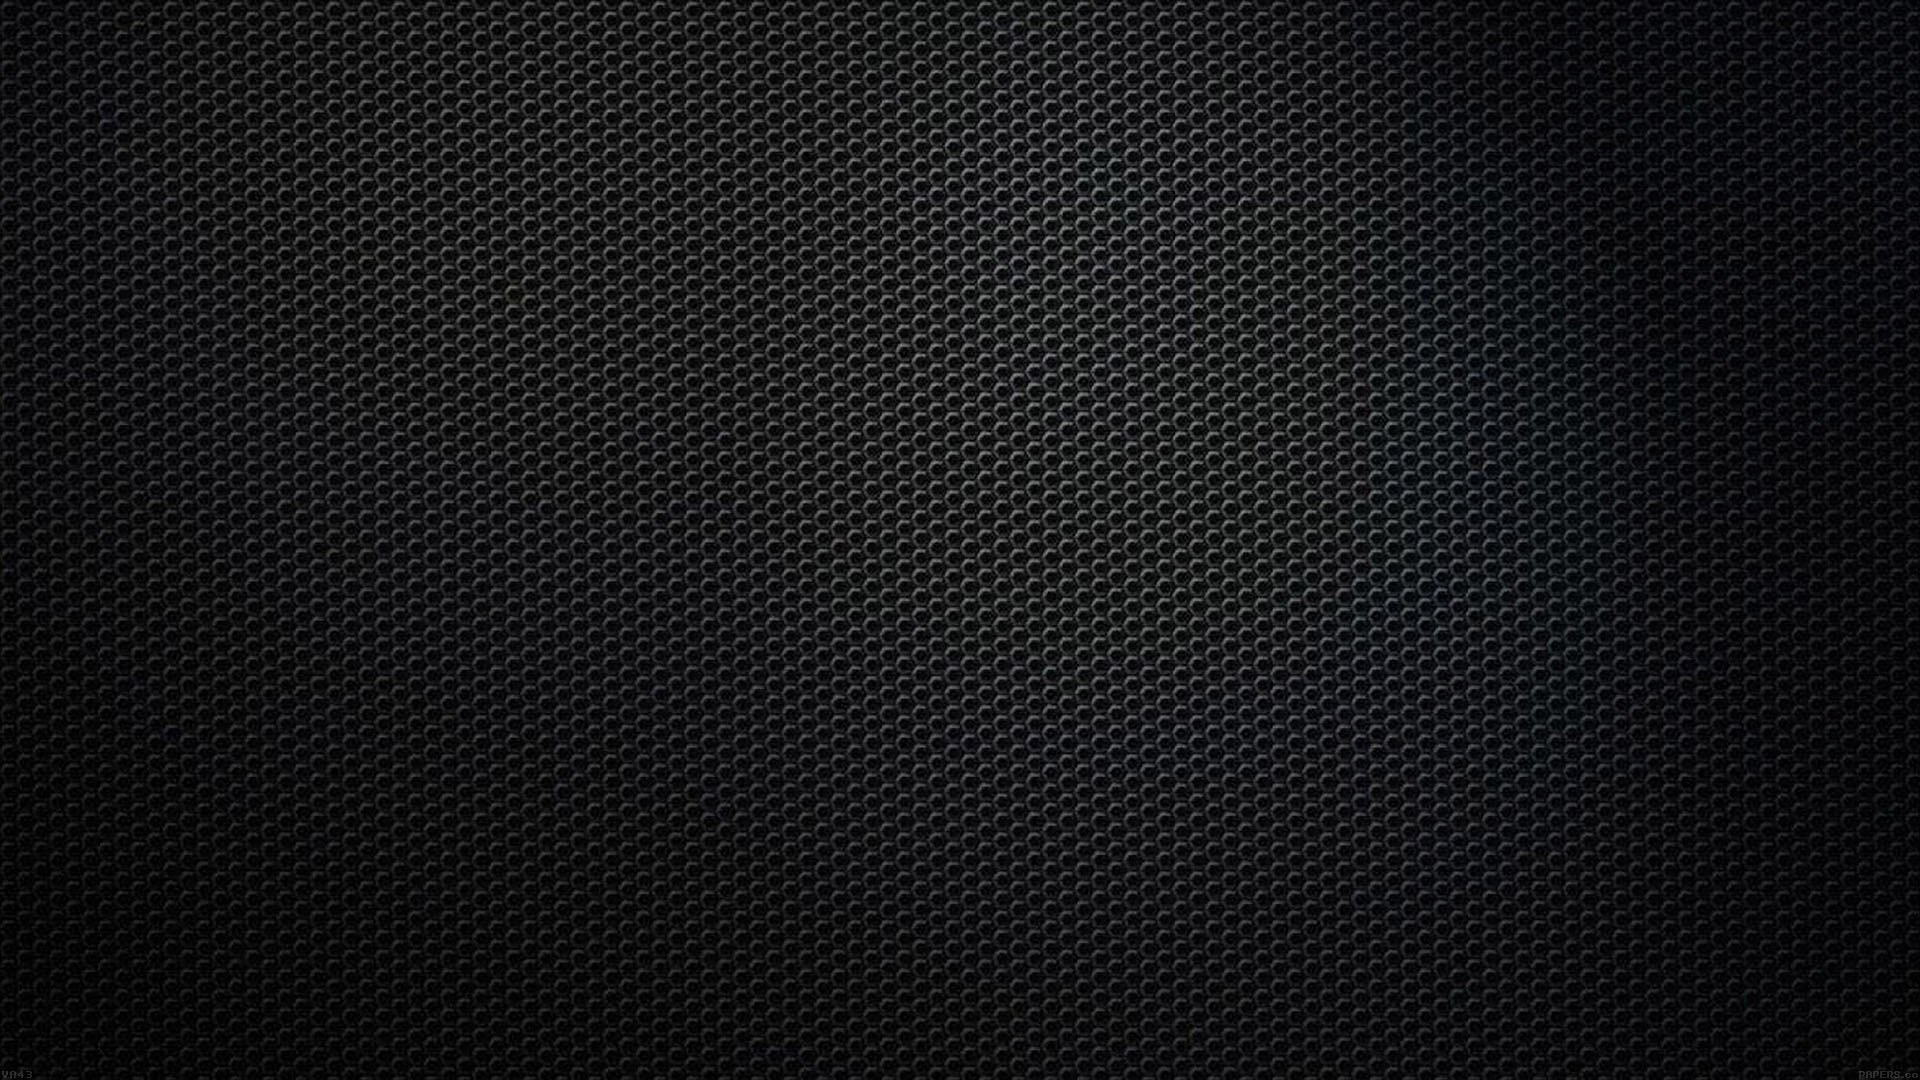 Summer Fall Desktop Wallpaper Va43 Carbon Pattern Black Pattern Papers Co